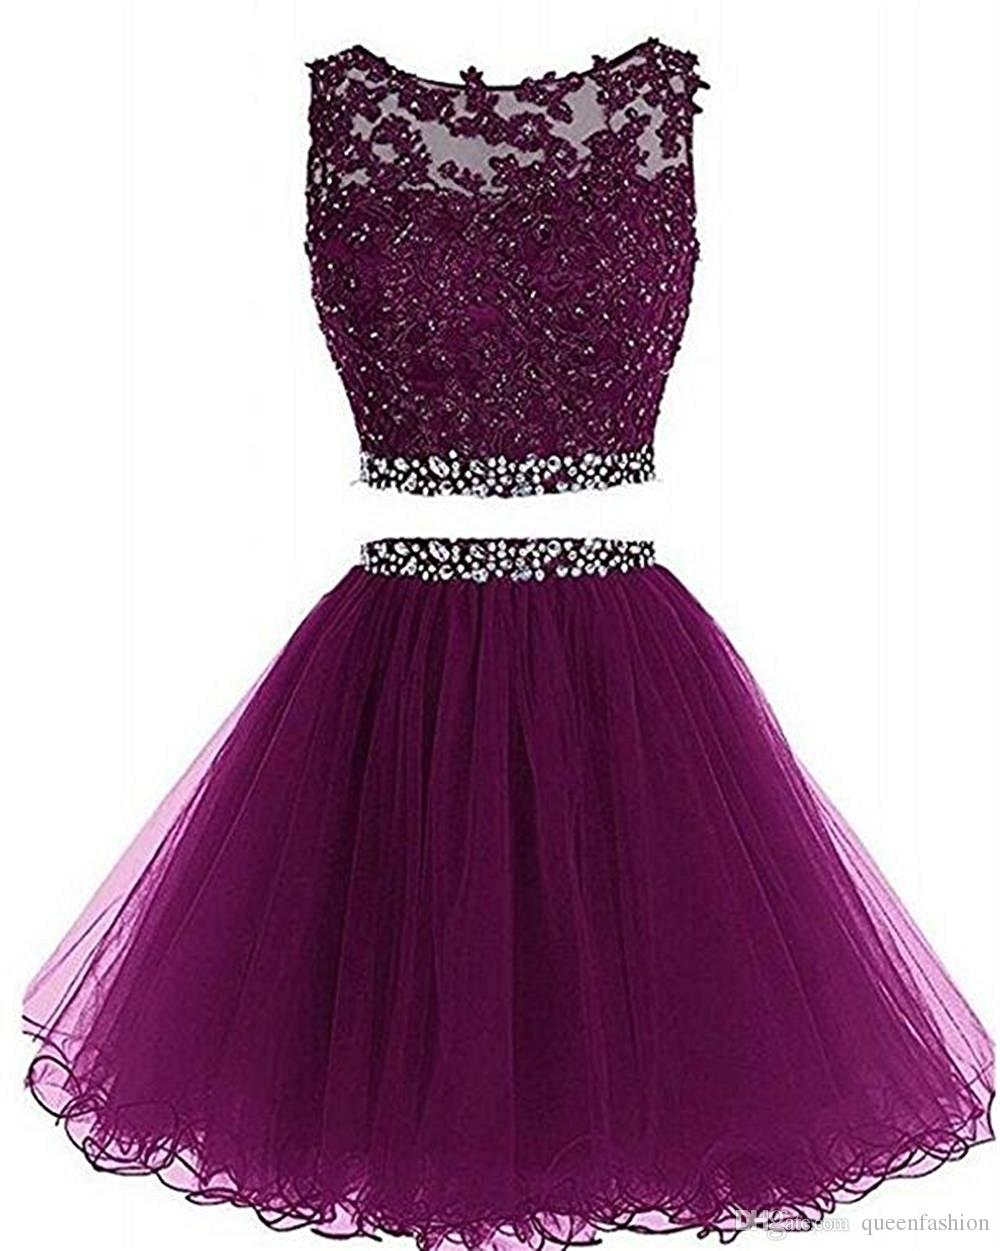 2020 Two Pieces Prom Dress Short Lace Appliques with Crystal Beaded Keyhole Back Tulle Sweet 16 Party Dresses Graduation Homecoming Gowns